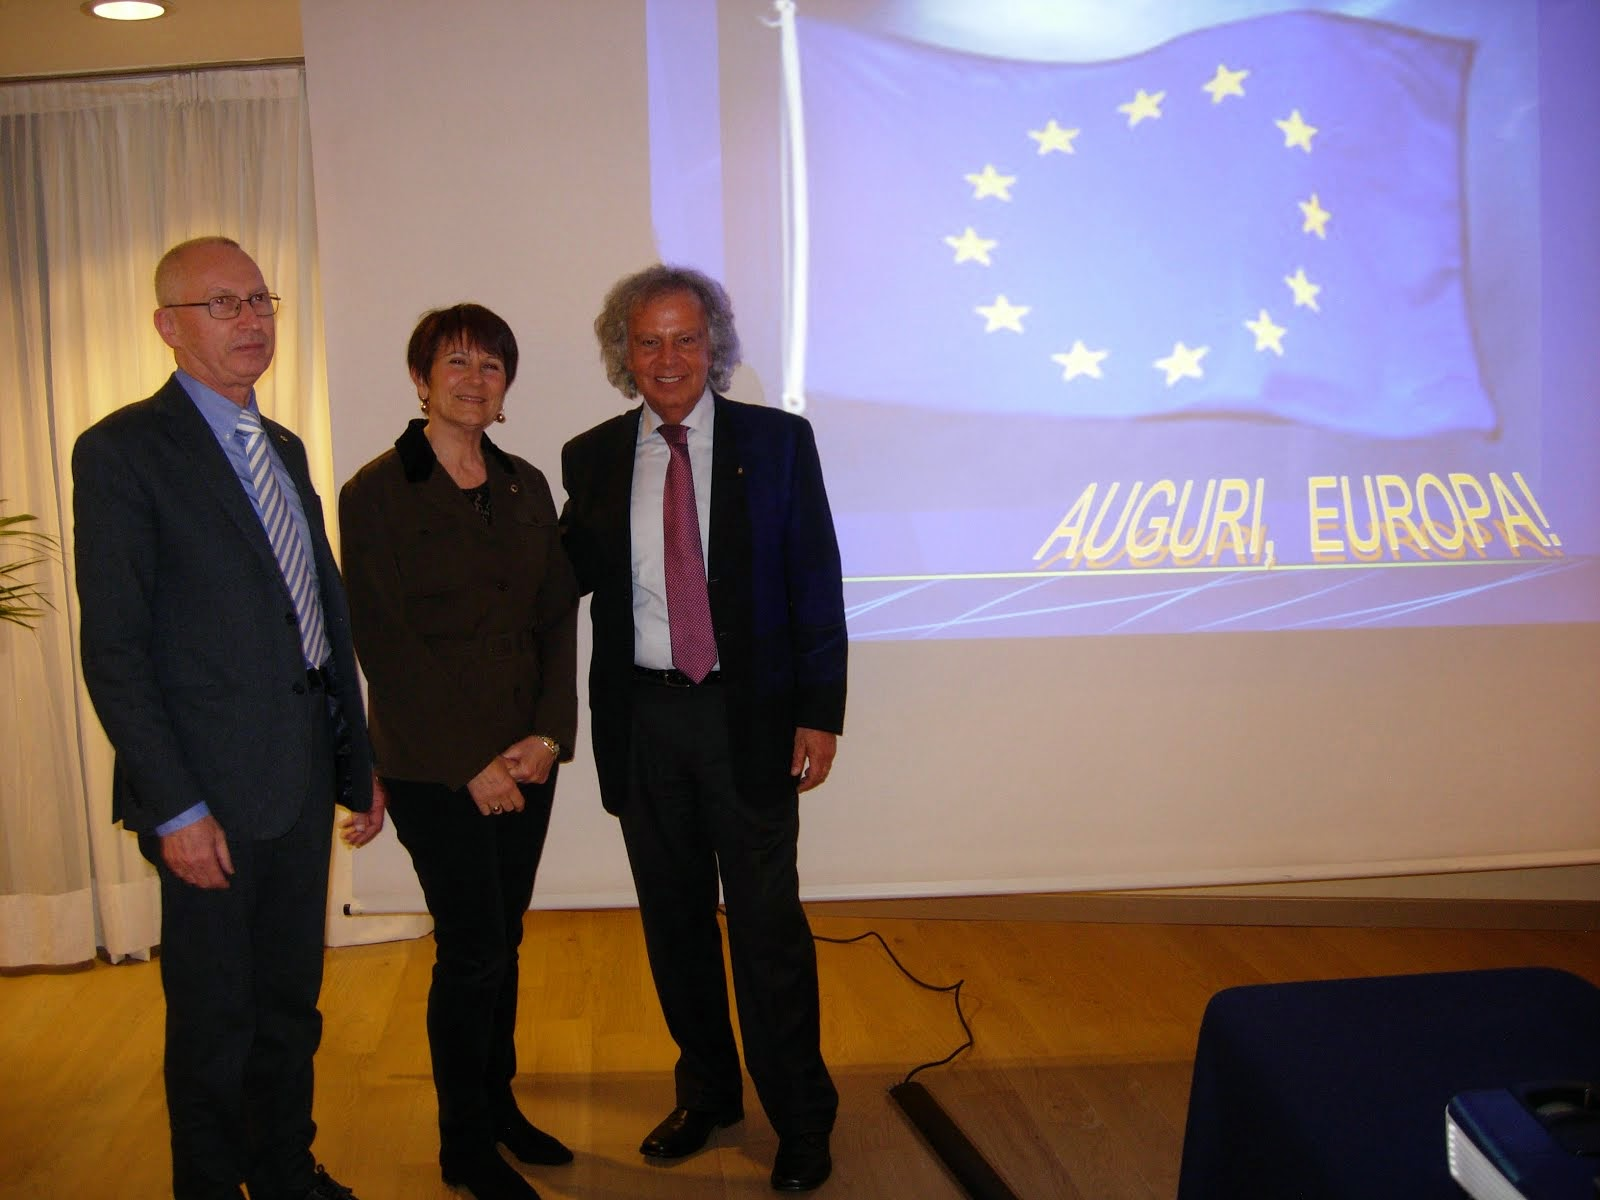 Foto scattate in occasione di conferenze Lions sul tema europeo.